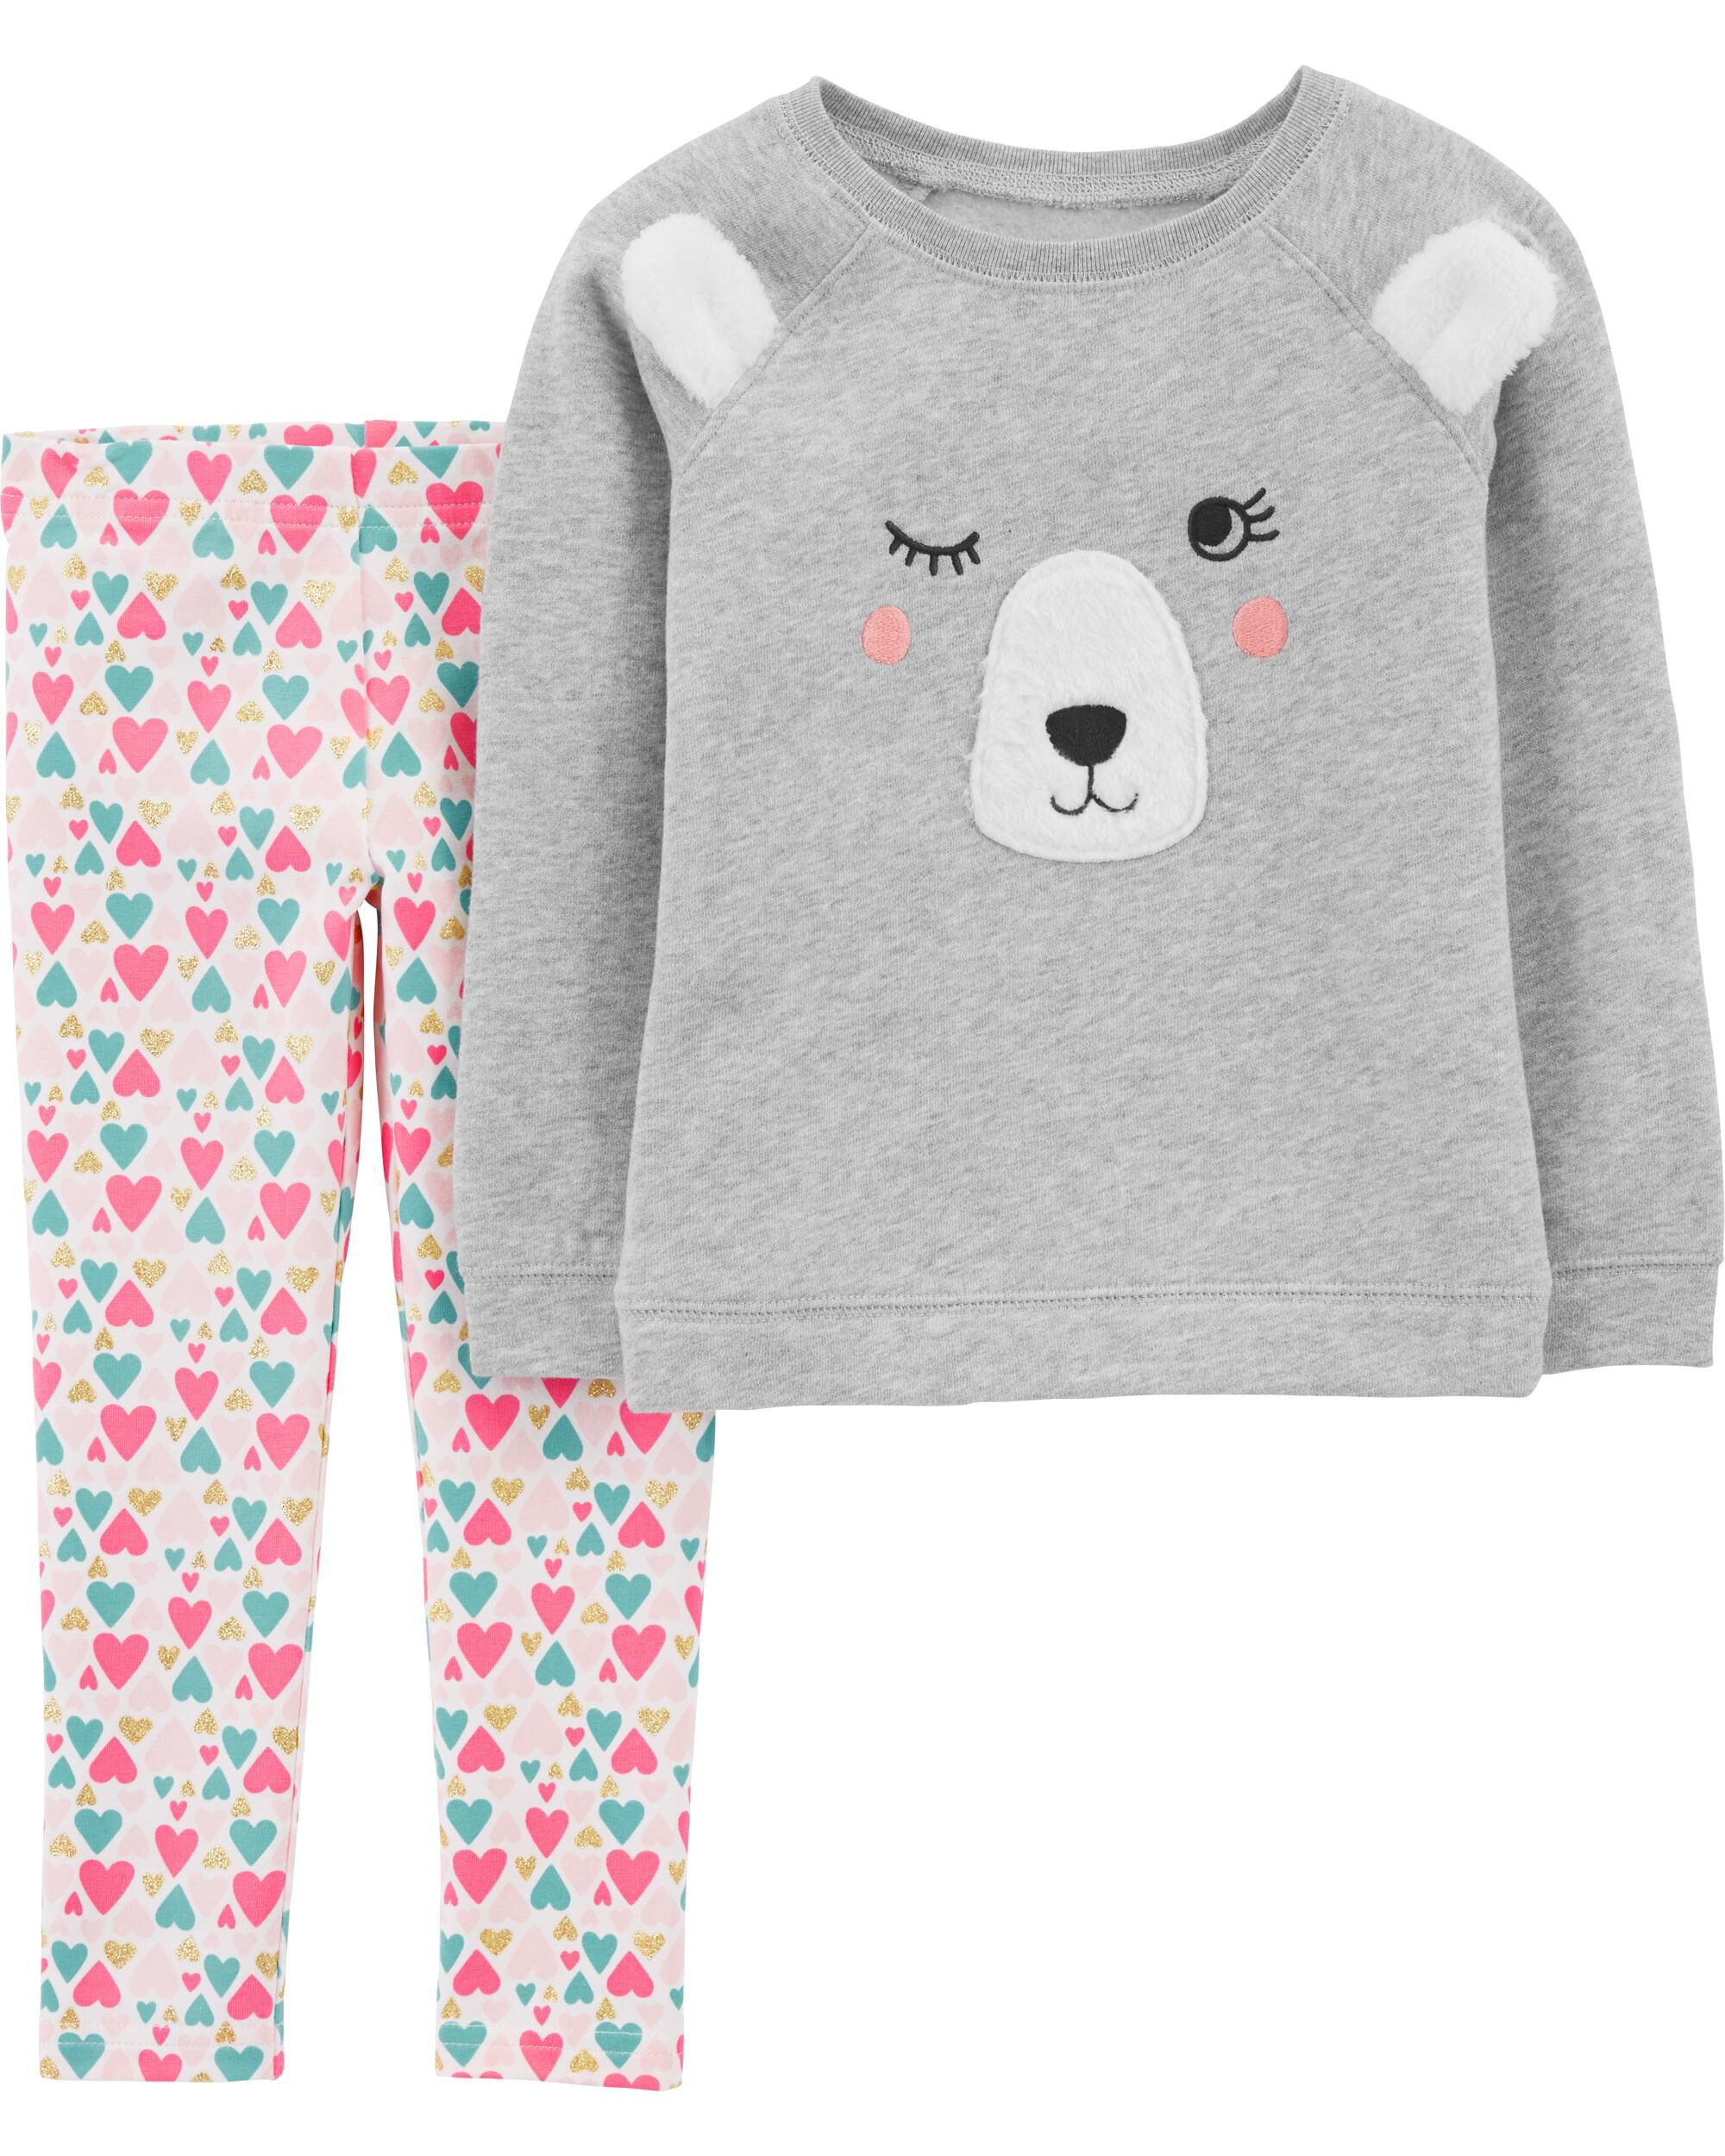 2-Piece Bear Fleece Top   Floral Legging Set. Loading zoom d80a47fe0